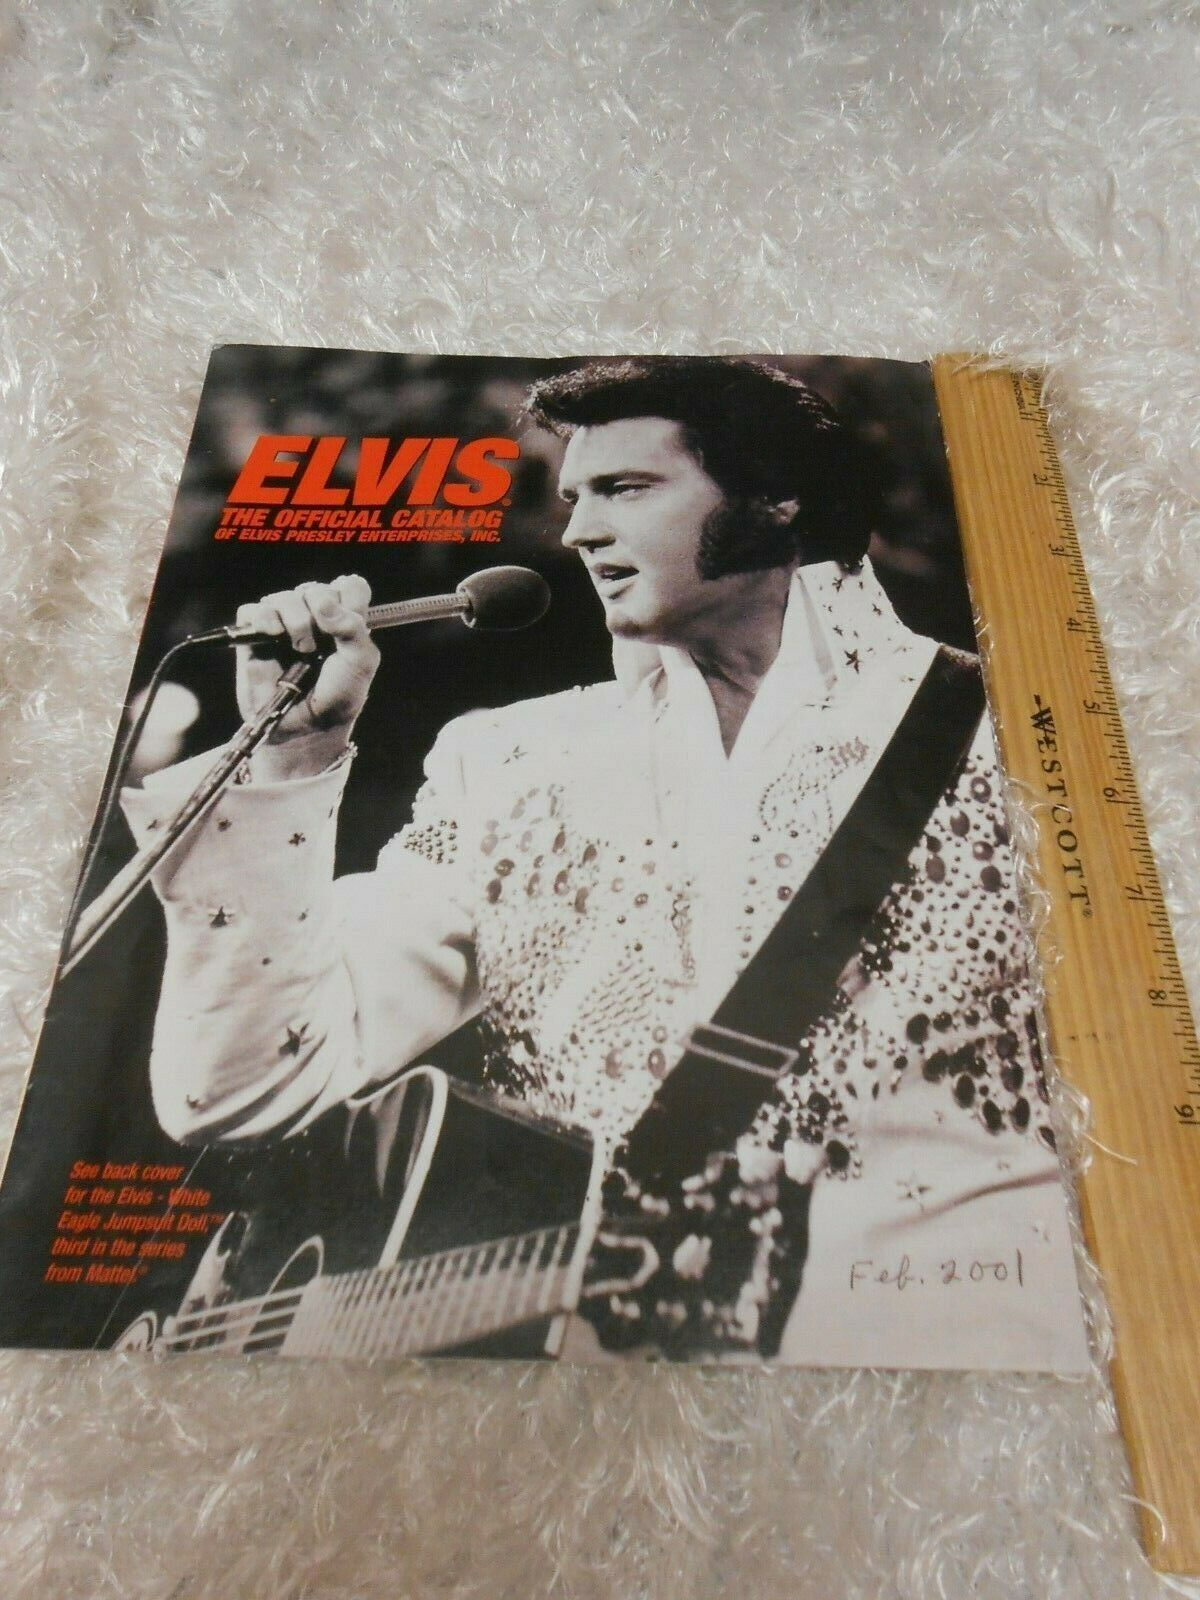 Primary image for Elvis Presley February 2001 official Catalog Booklet magazine